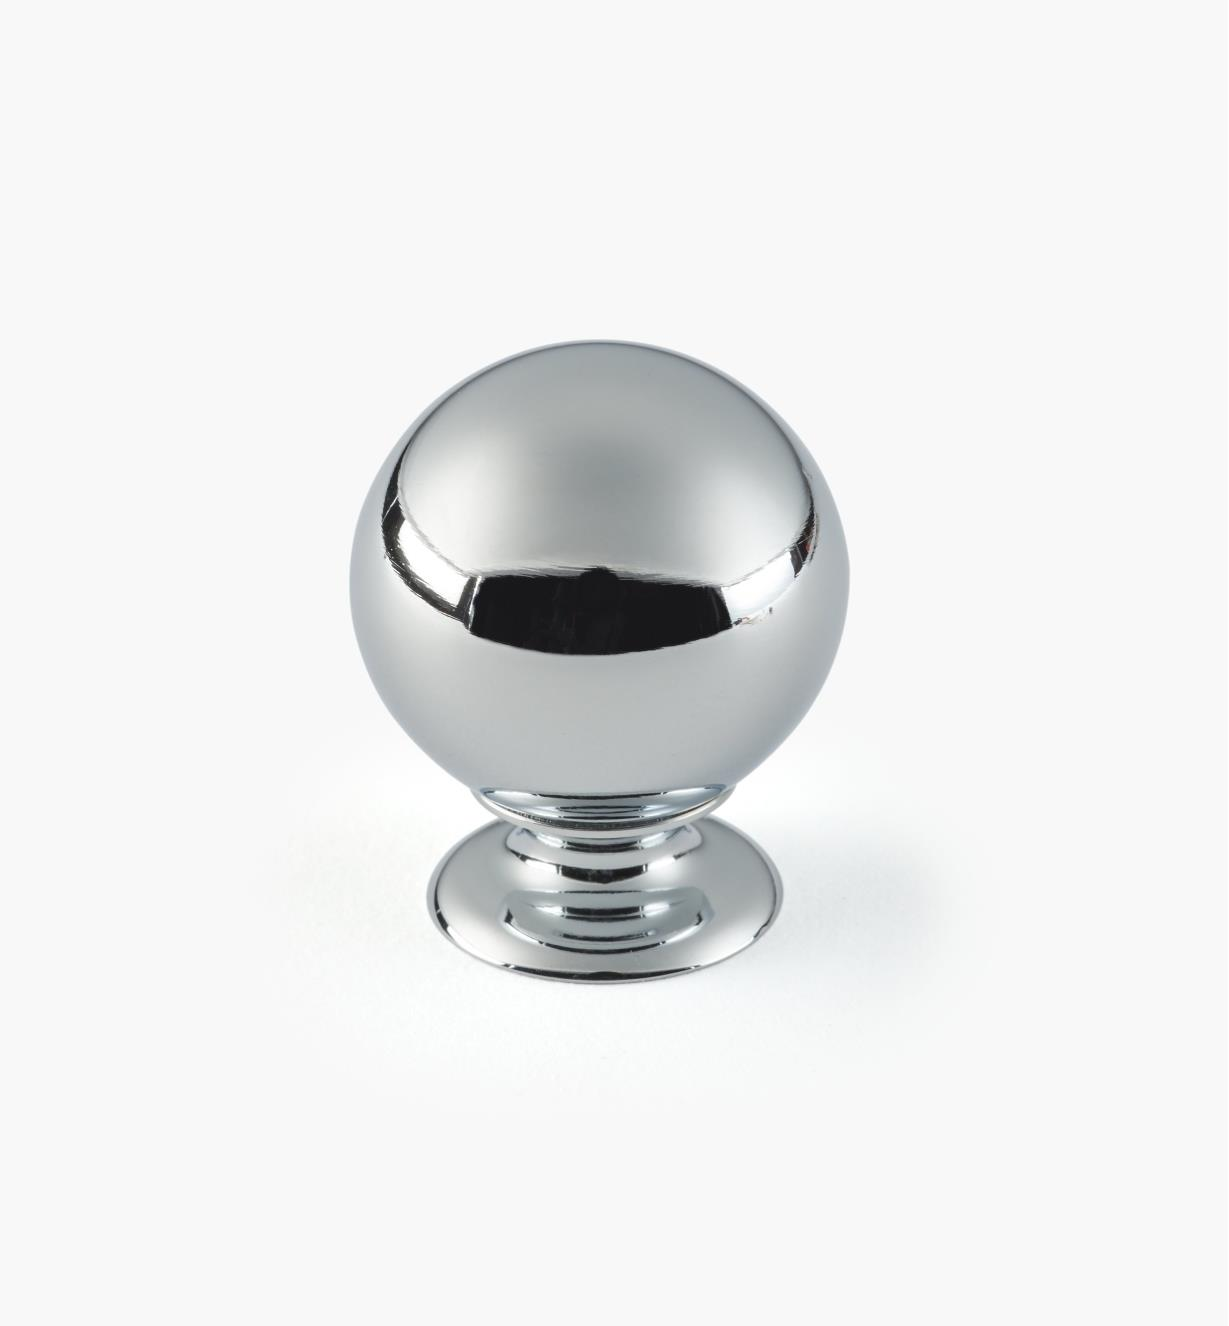 "01W1801 - 1 1/8"" x 1 7/16"" Chrome Plate Ball Knob"